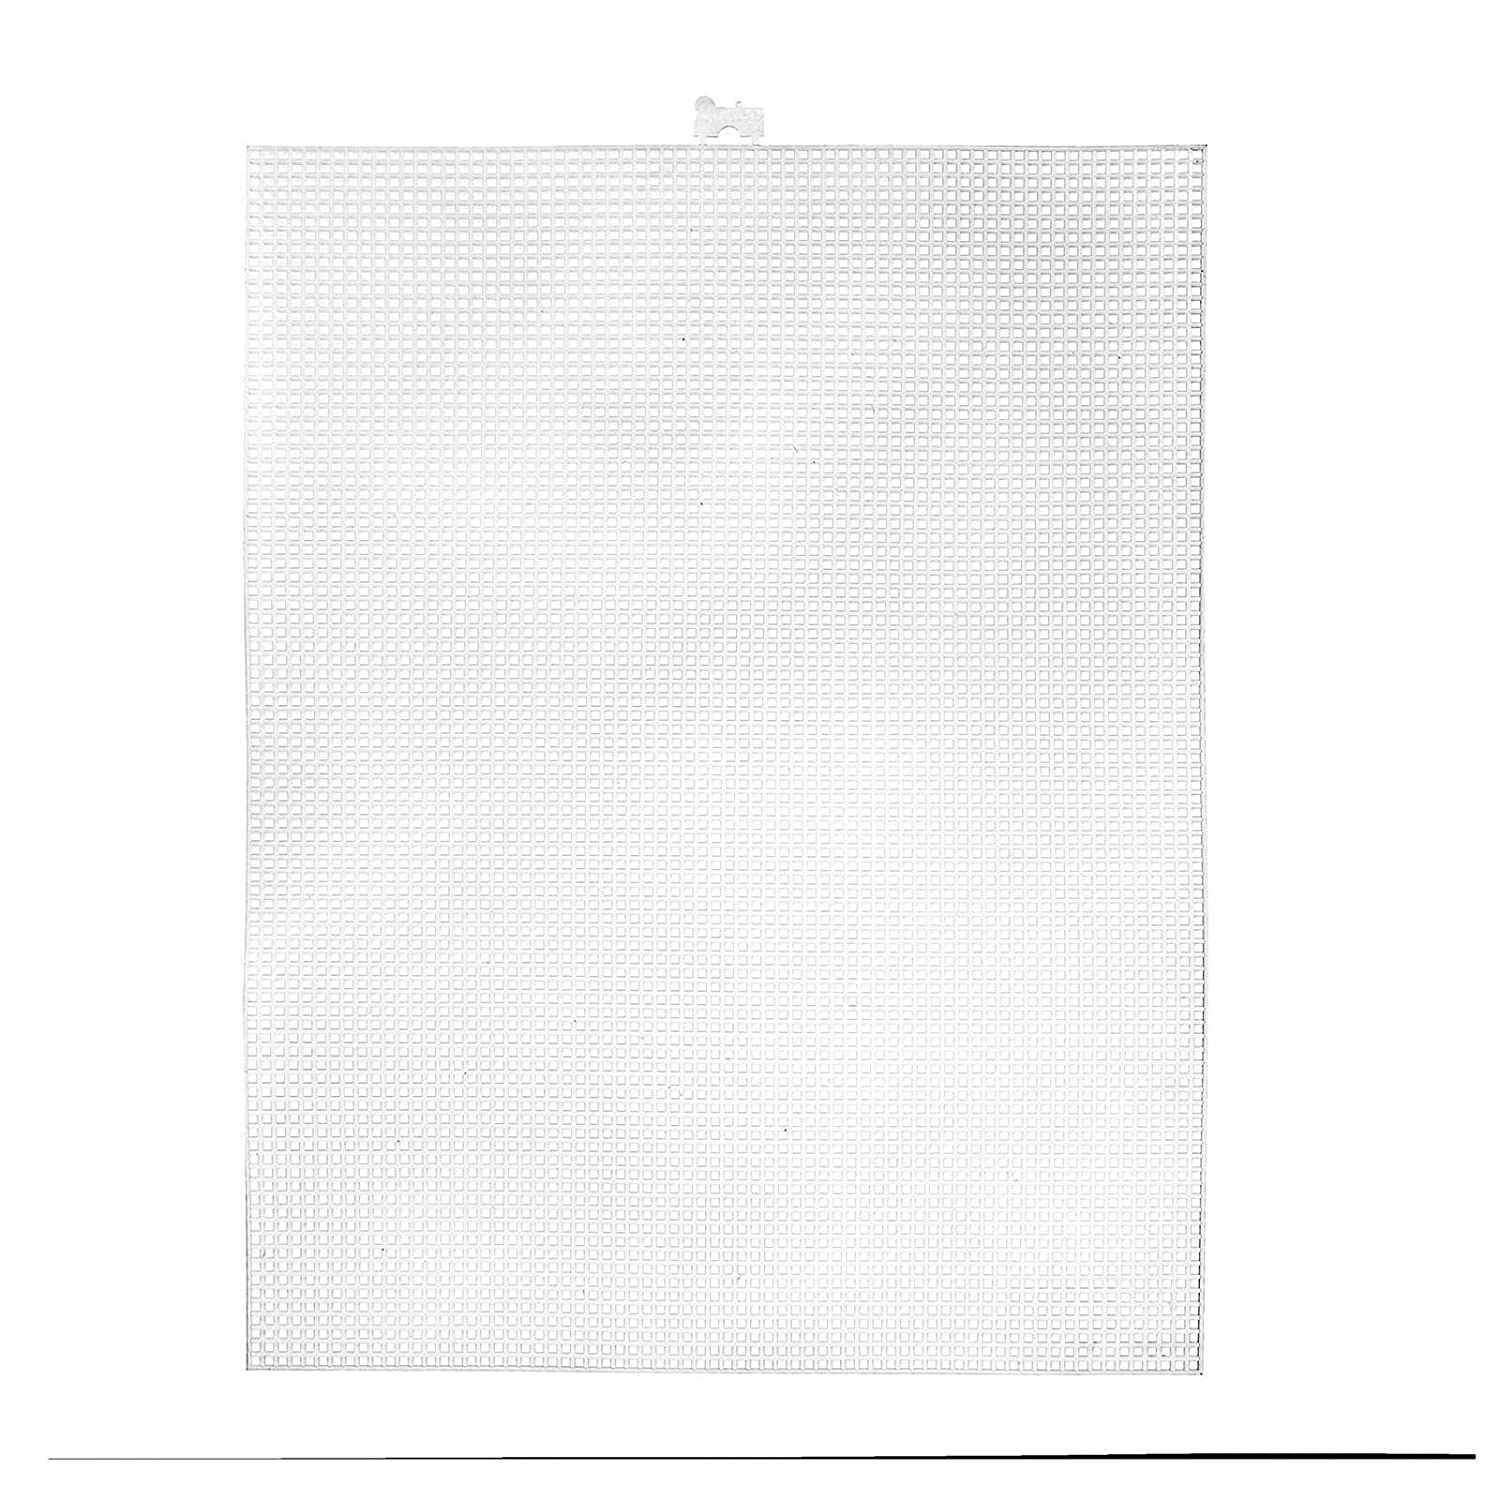 """8.25/""""x11/"""" Per Sheet Picture Frames 2 Sheets 14 Holes Per Inch Create a Variety of Fun Plastic Canvas Crafts Including Bookmarks Pins and More Darice 14 Mesh Clear Plastic Canvas"""